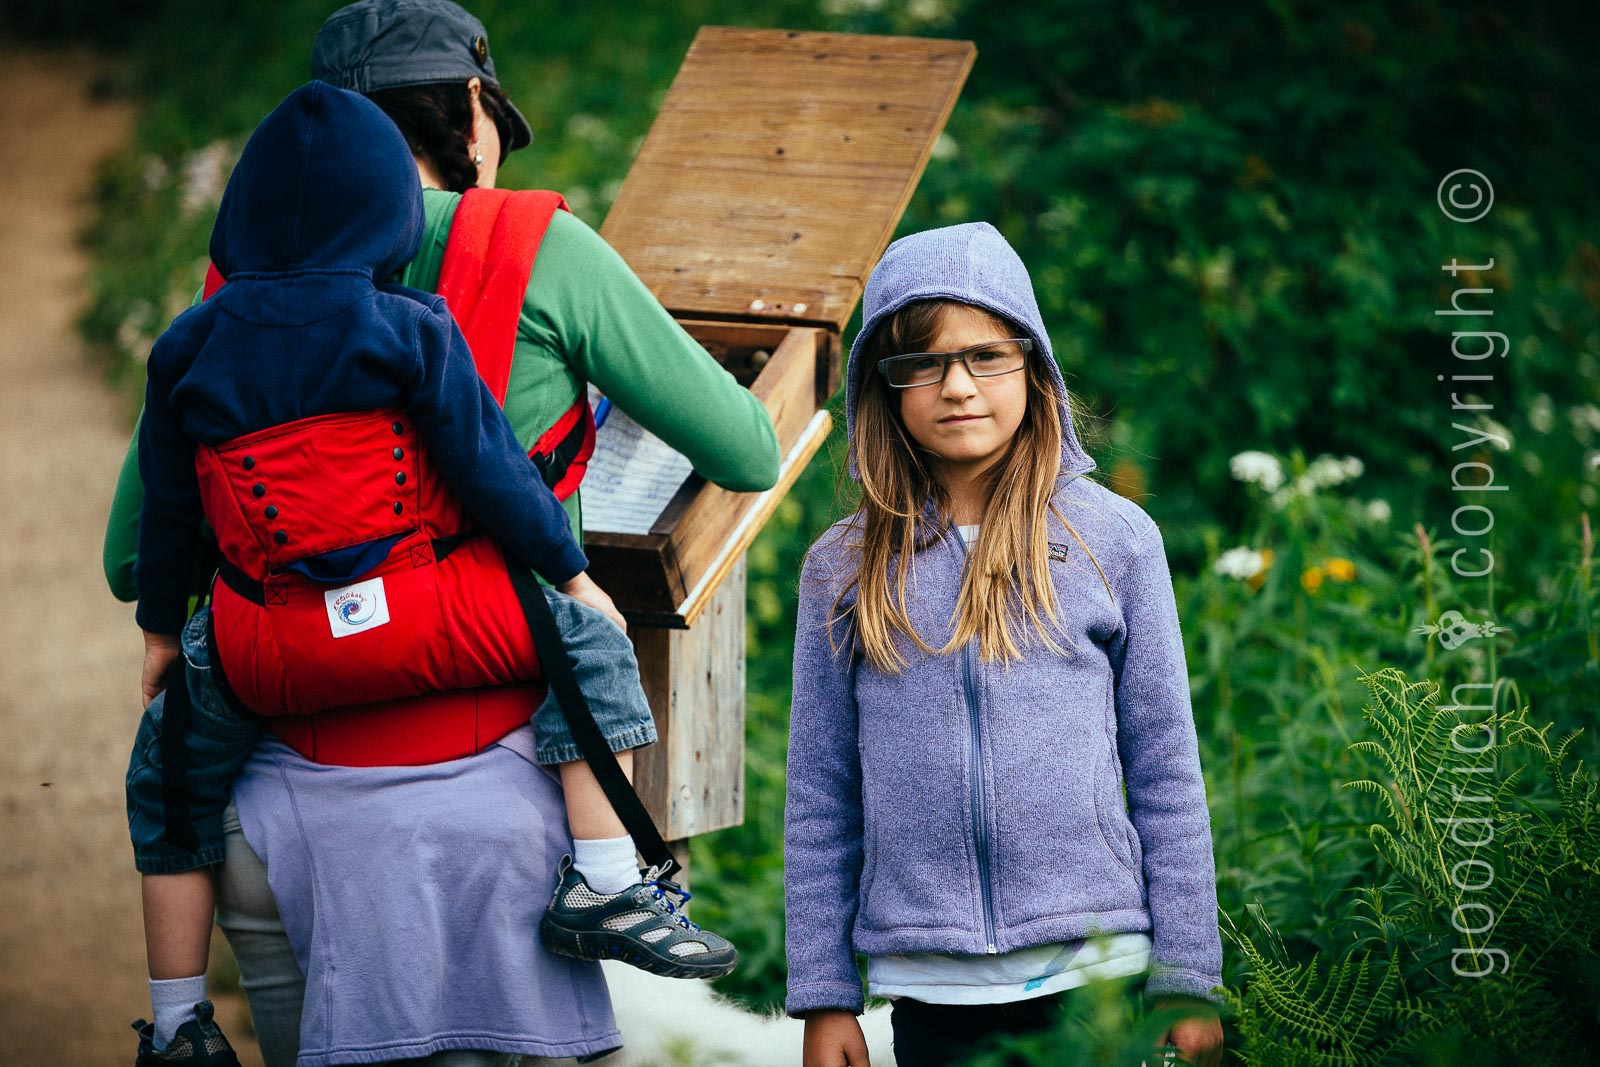 Friends and Family Photography - Family Hike by Jay Goodrich